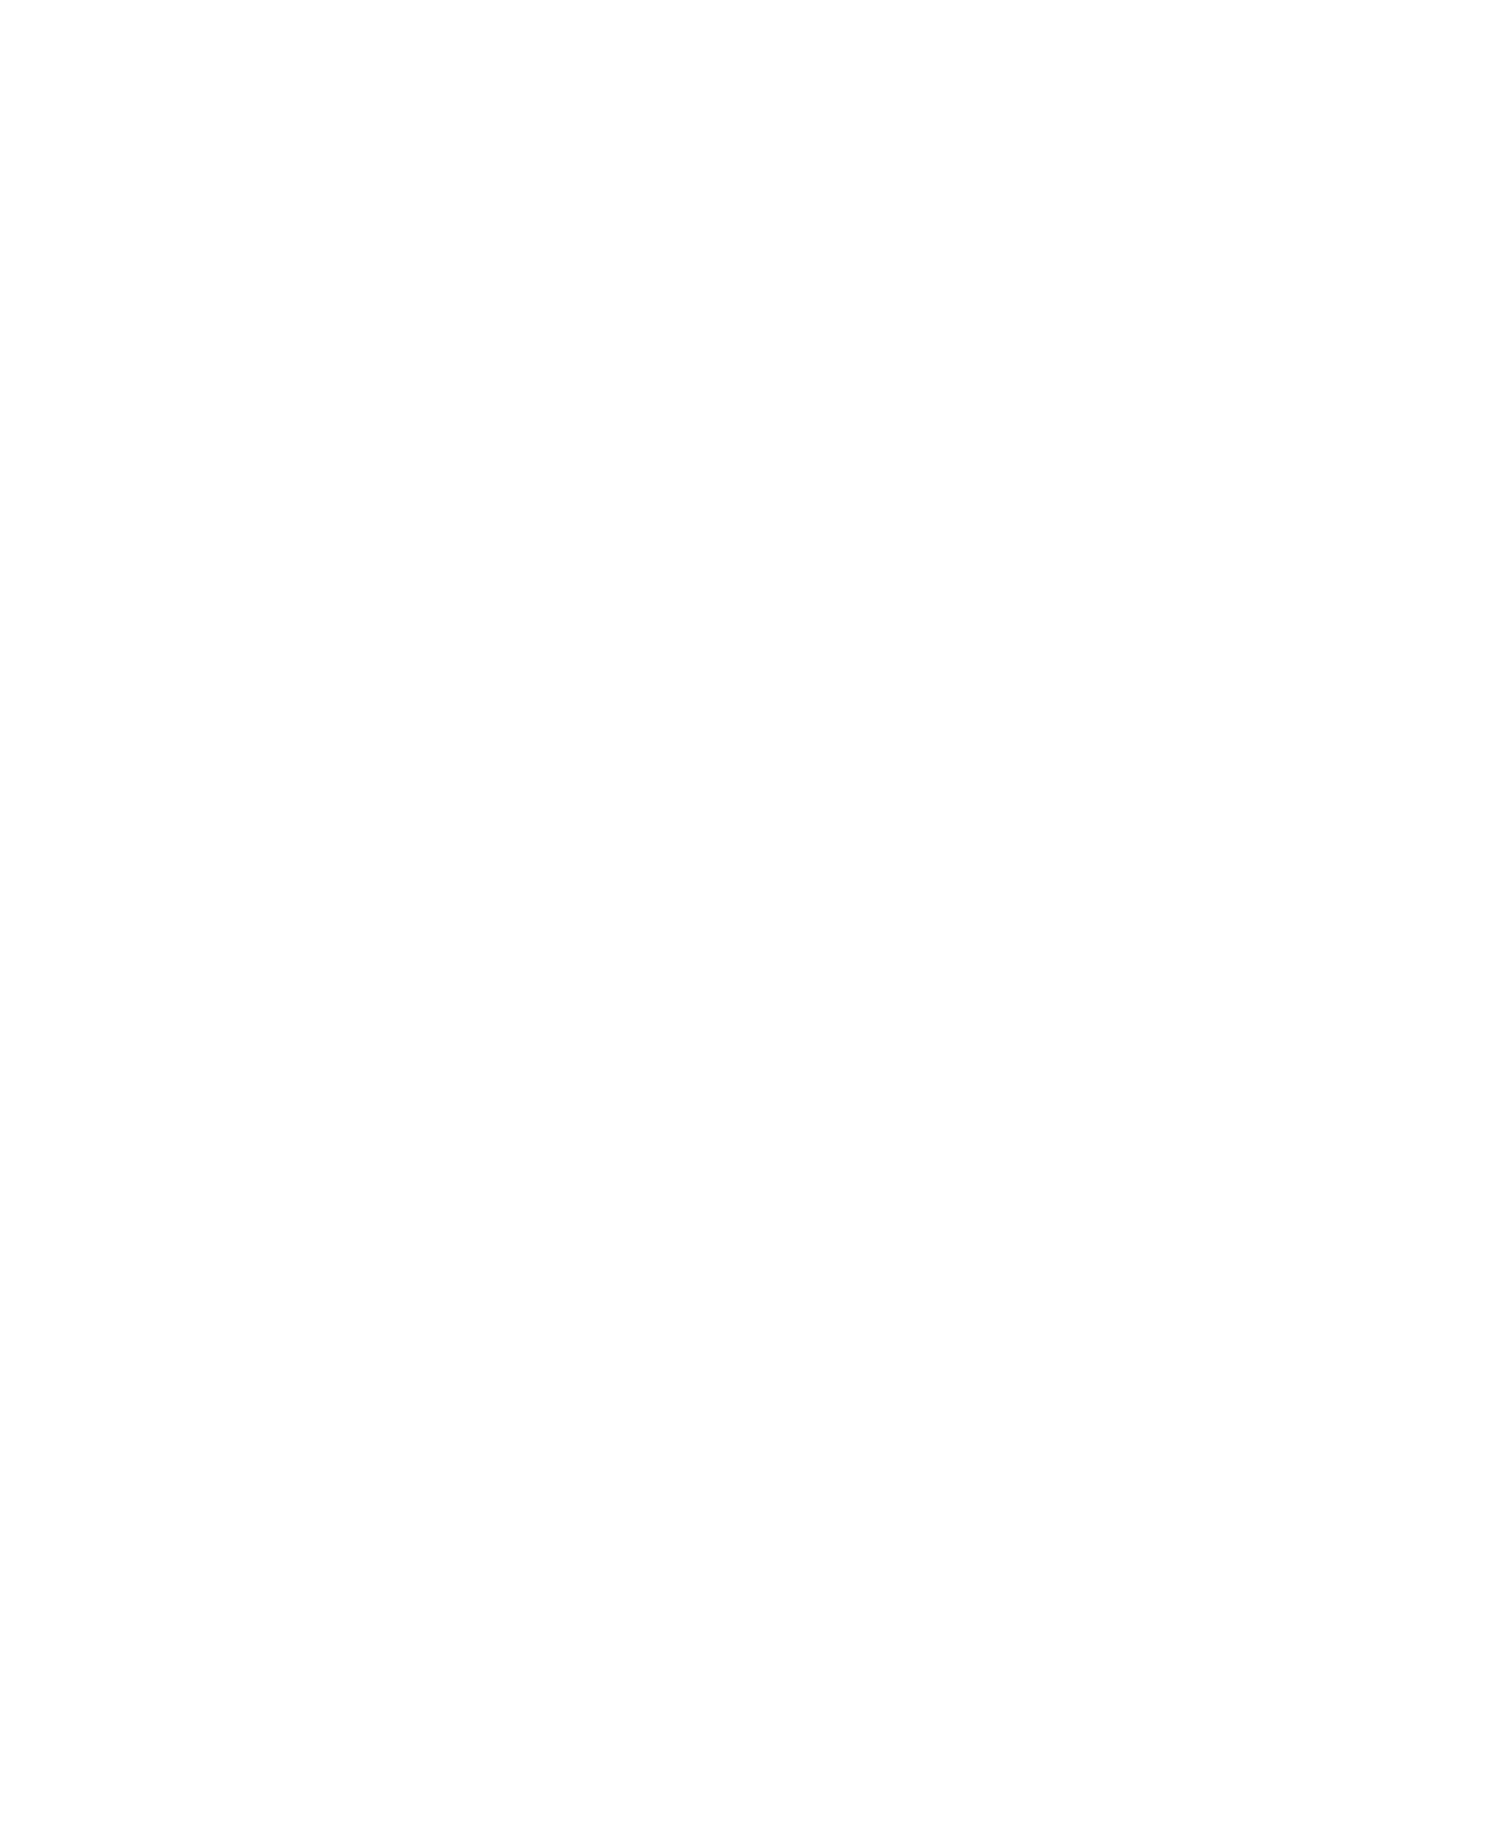 North Dwarf Records